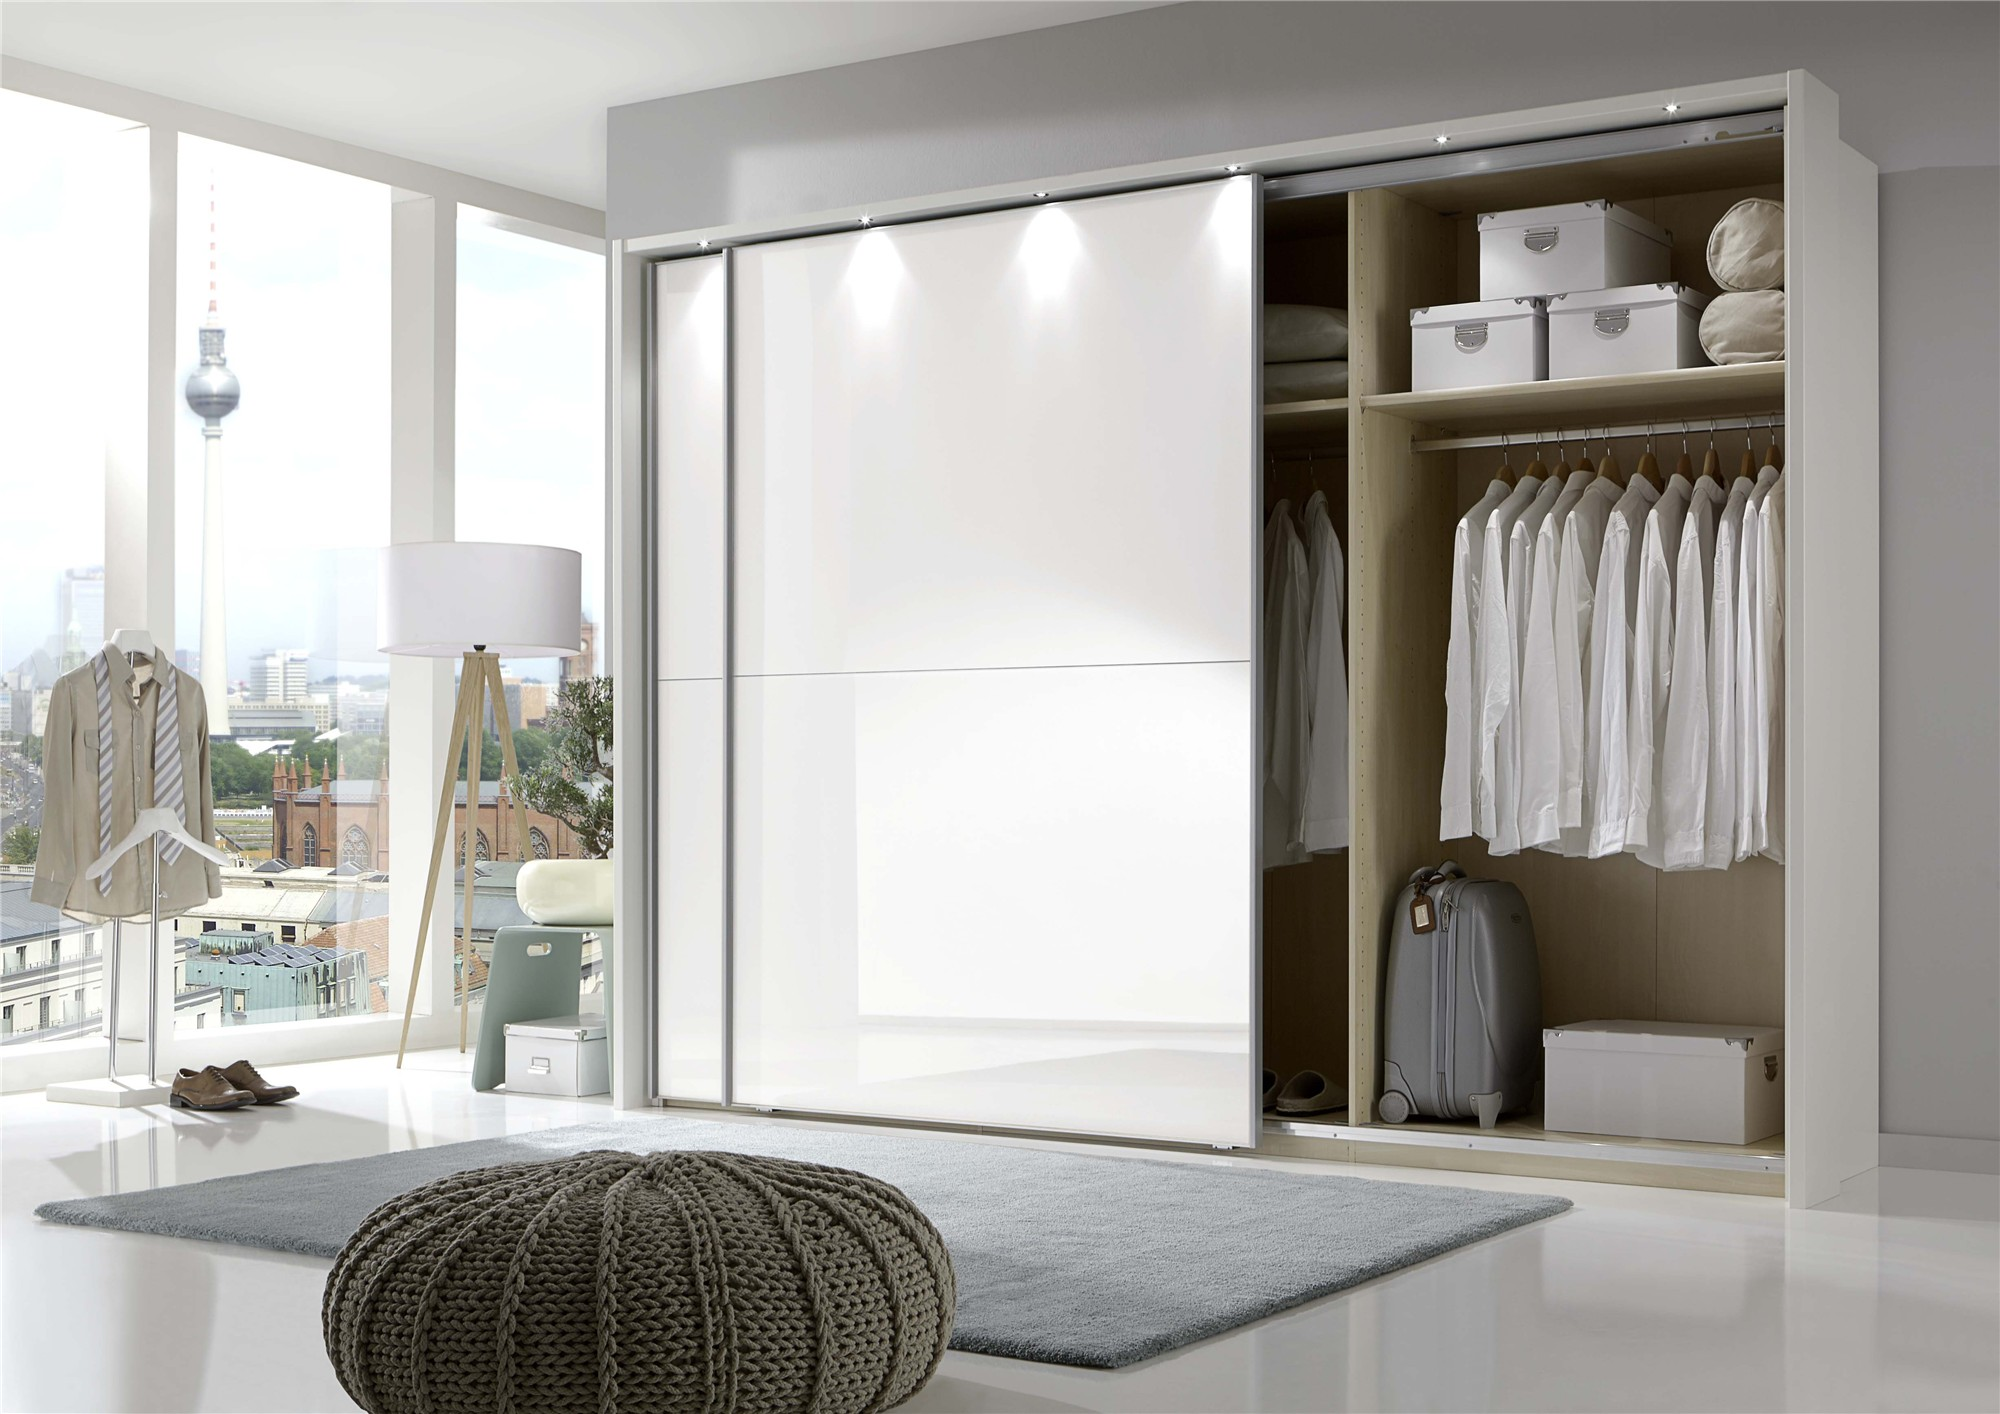 Different Types Of Bedroom Wardrobe Design Ideas To Organize Your